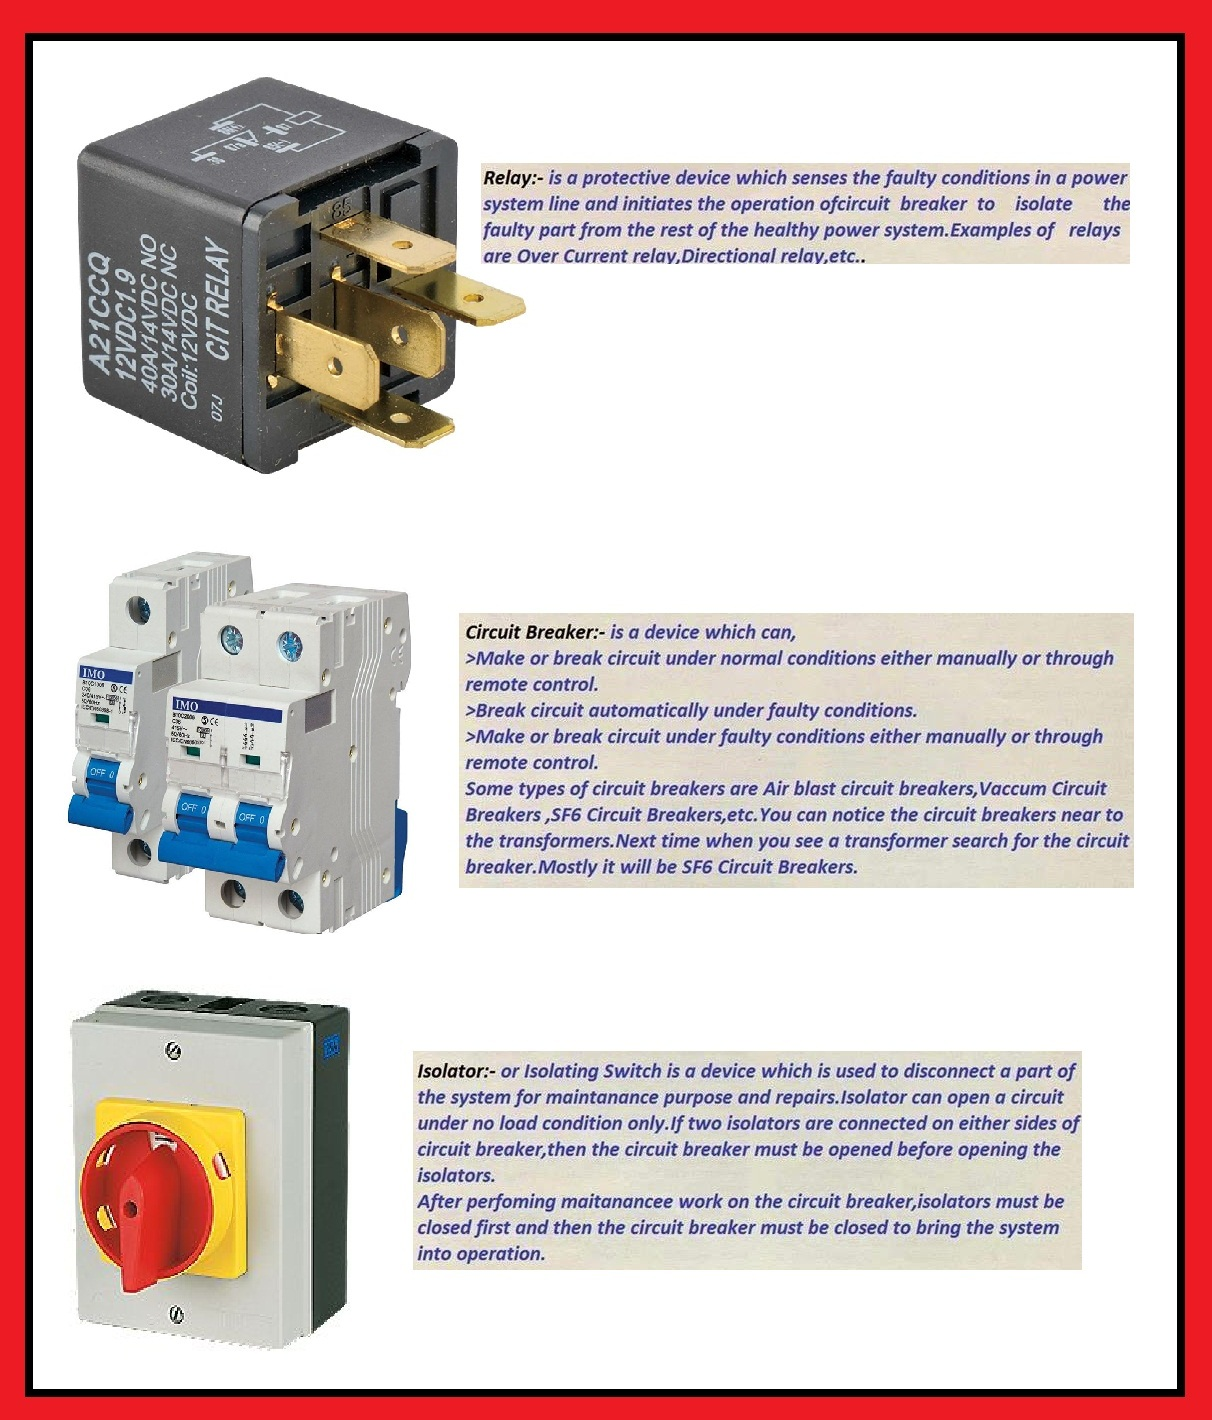 What is the difference between Relay Circuit Breaker and Isolator